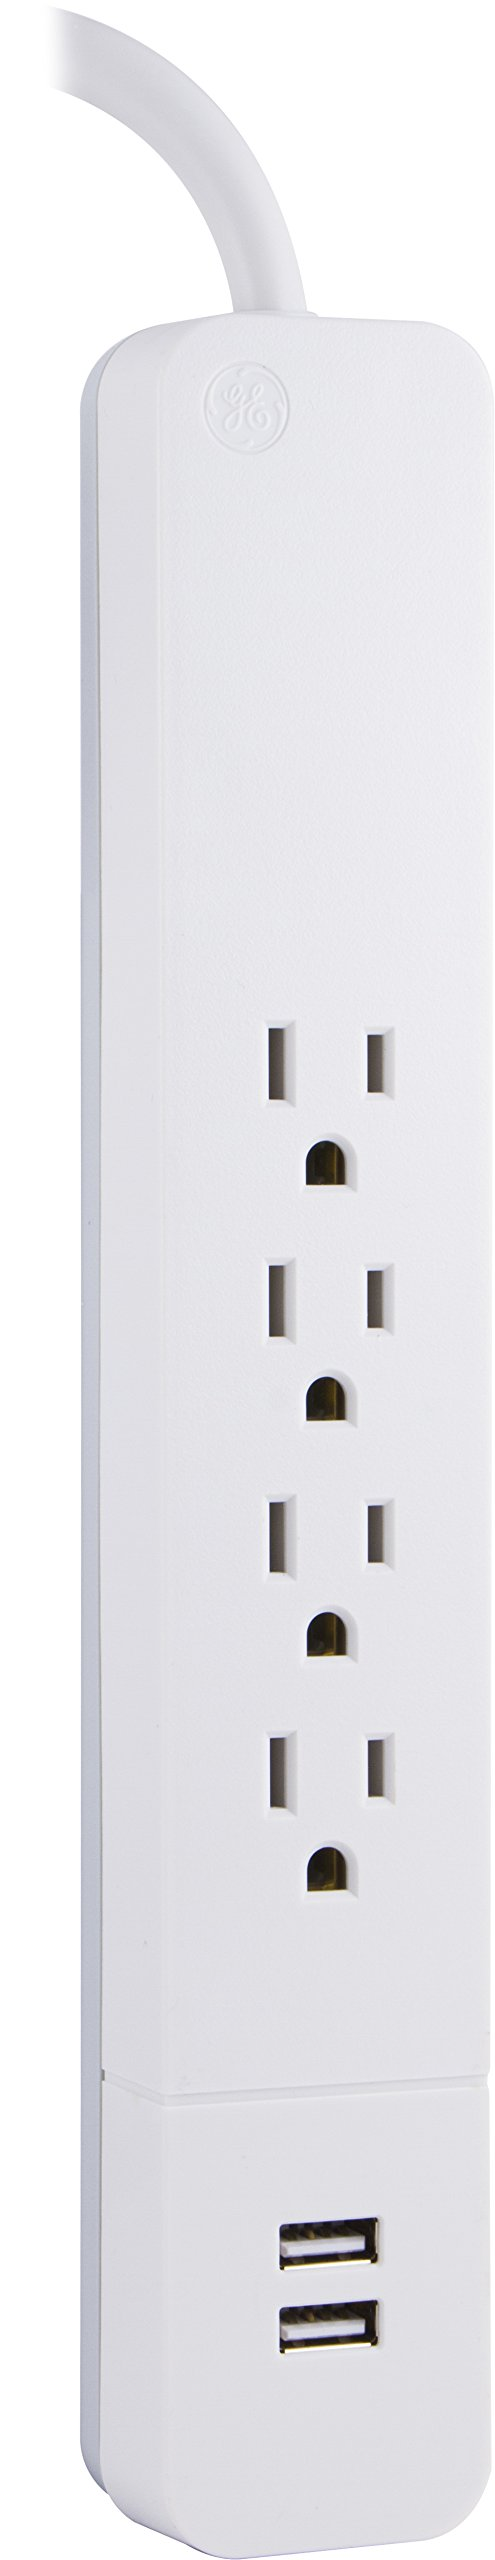 GE Power Strip Surge Protector, USB Charger, 4 Outlets, 2 USB Ports, Fast Charge, Flat Plug, Long Cord, 3ft, White, 37212